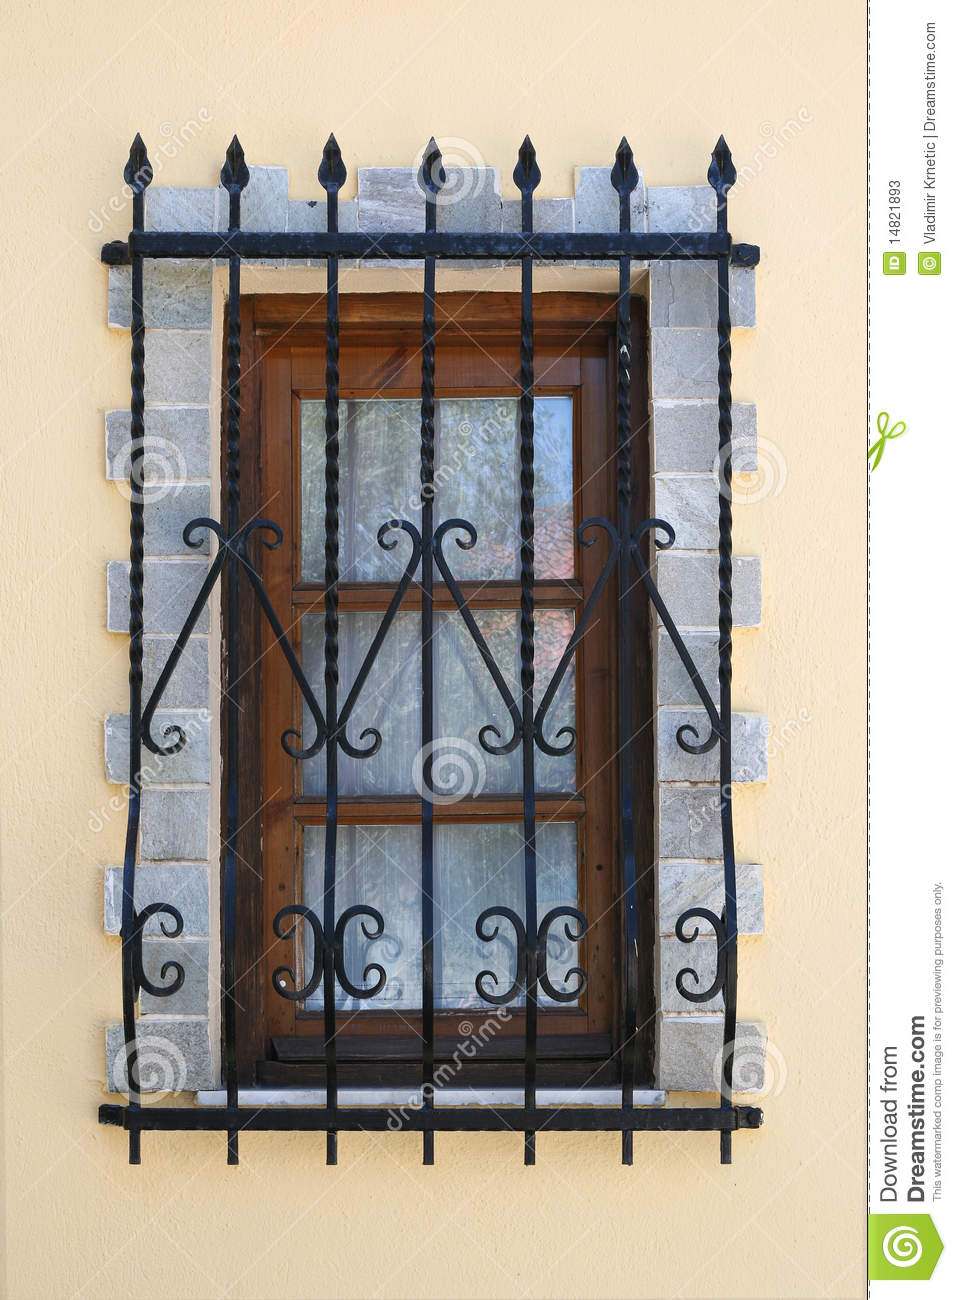 Window With Iron Security Bars Stock Photos Image 14821893